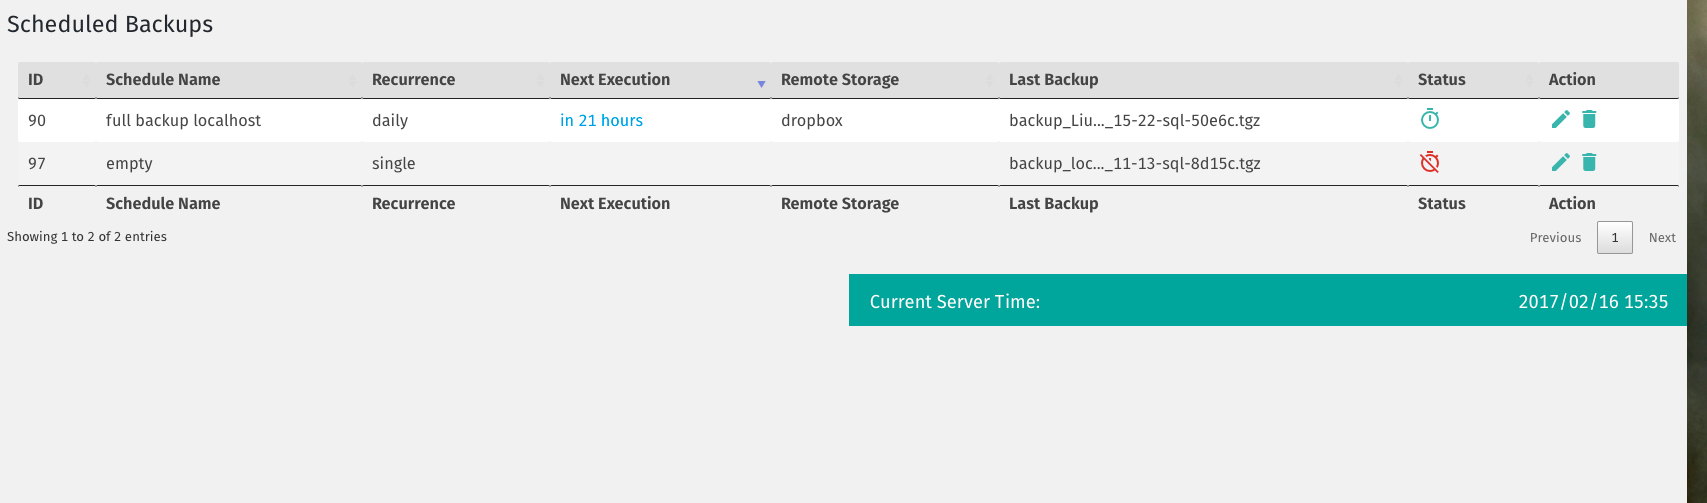 Manage Scheduled Backups Panel